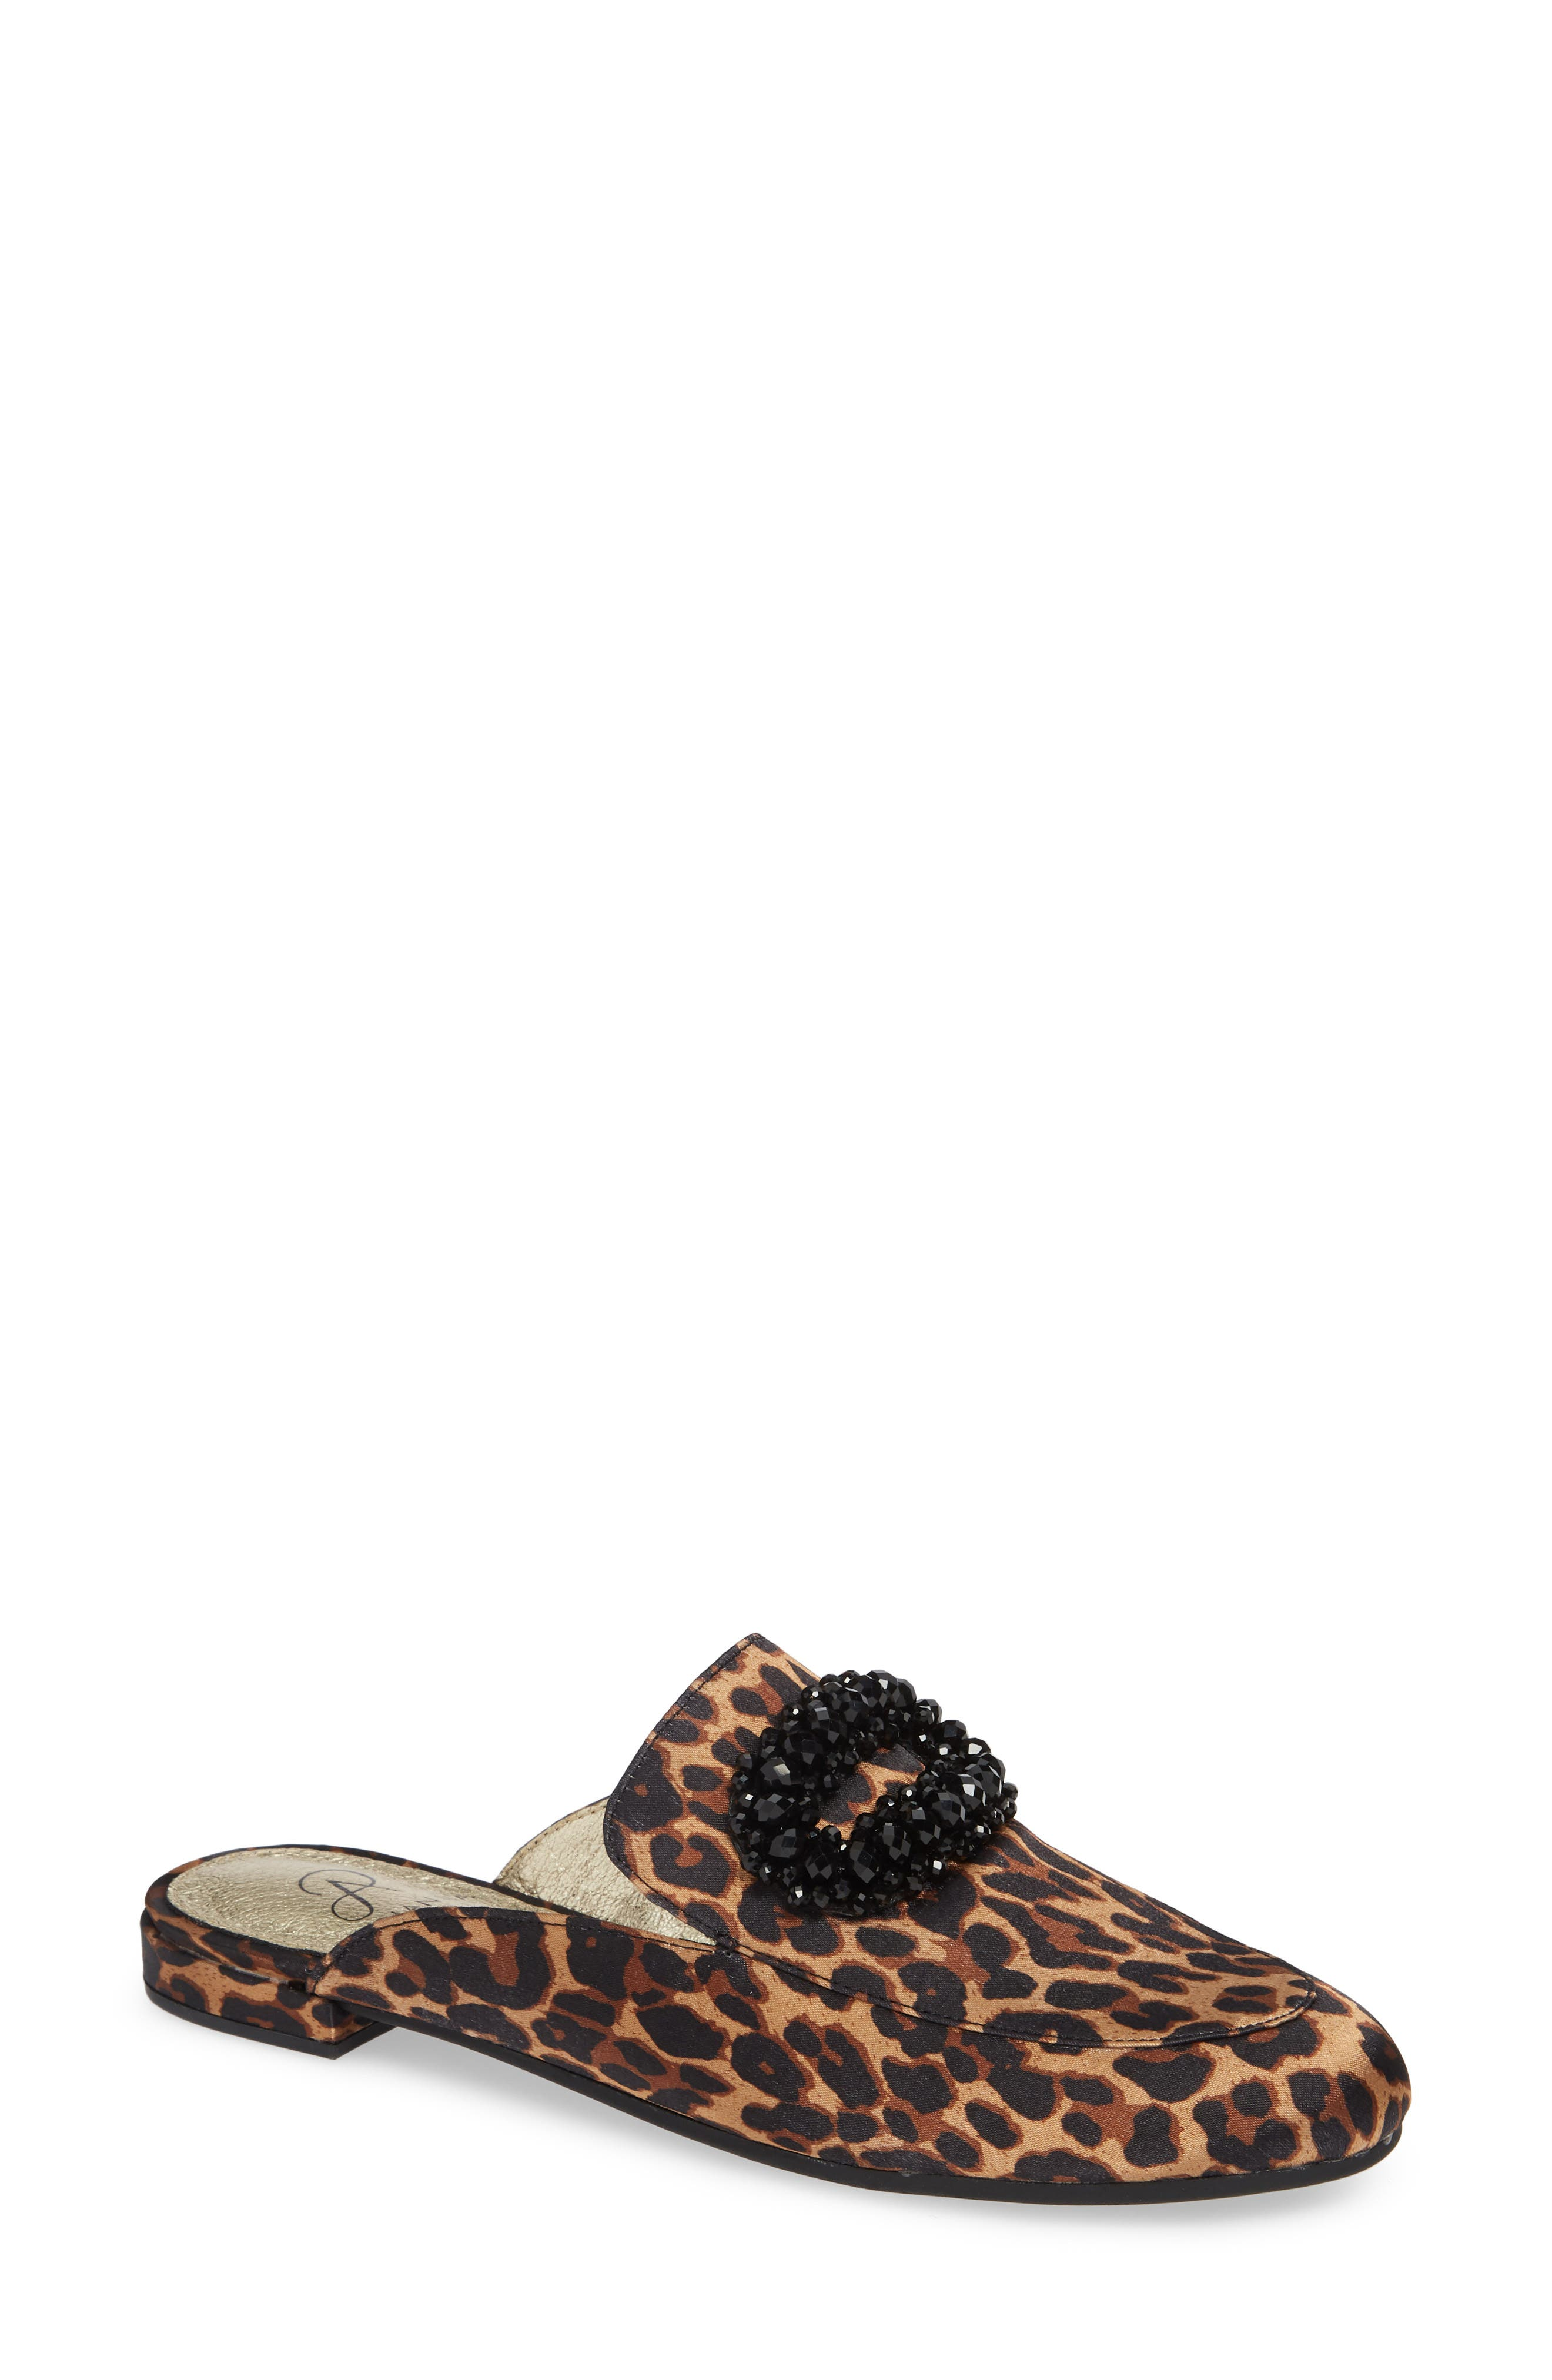 ADRIANNA PAPELL Becky Embellished Mule, Main, color, LEOPARD